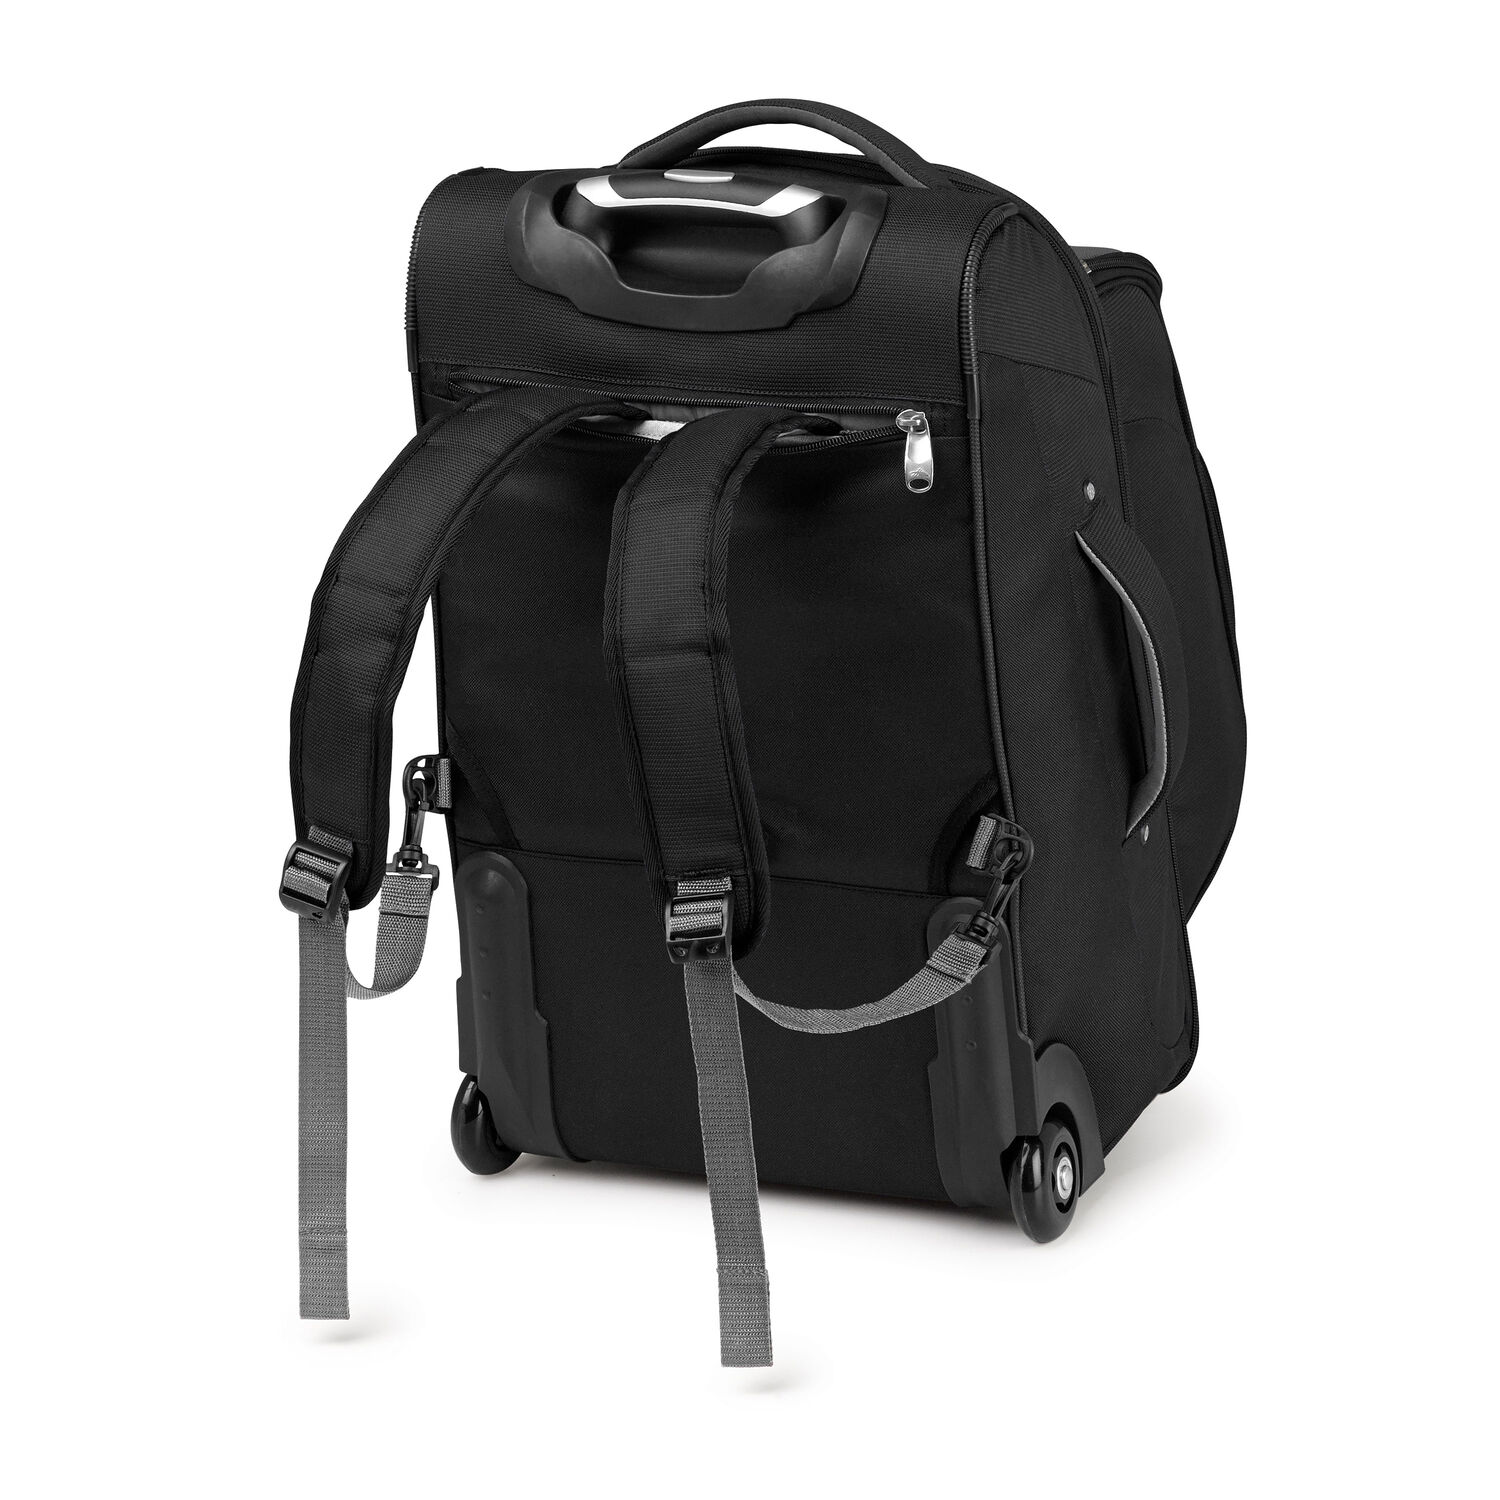 High Sierra Adventure Access Carry-On Wheeled Backpack with Removable  Daypack in the color Black 1555e371303